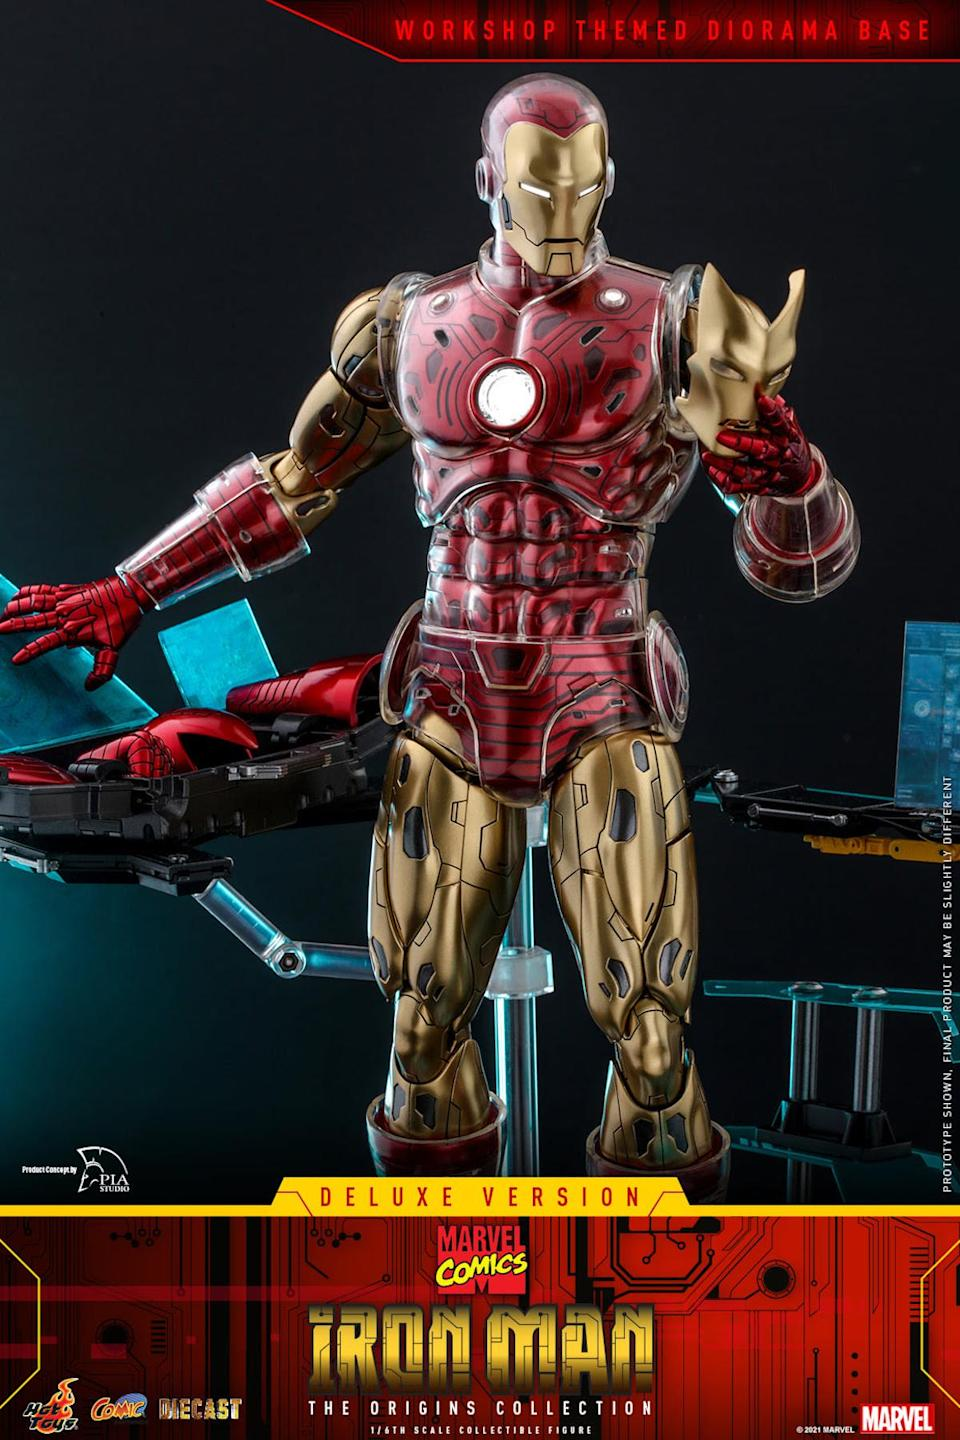 Hot Toys' Iron Man Marvel comics figure standing up and looking at a new mask in his hand